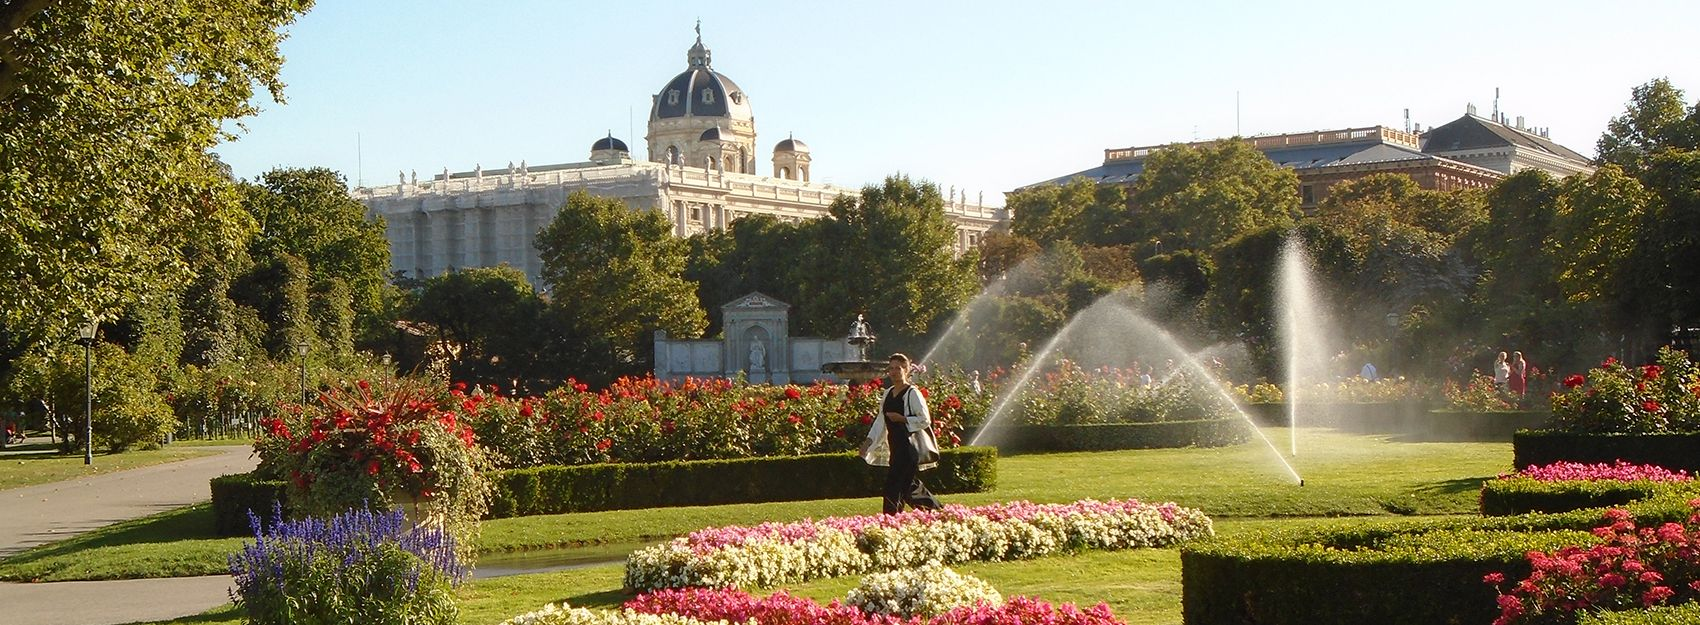 Vienna study abroad student photo of the Schönbrunn Palace and its garden